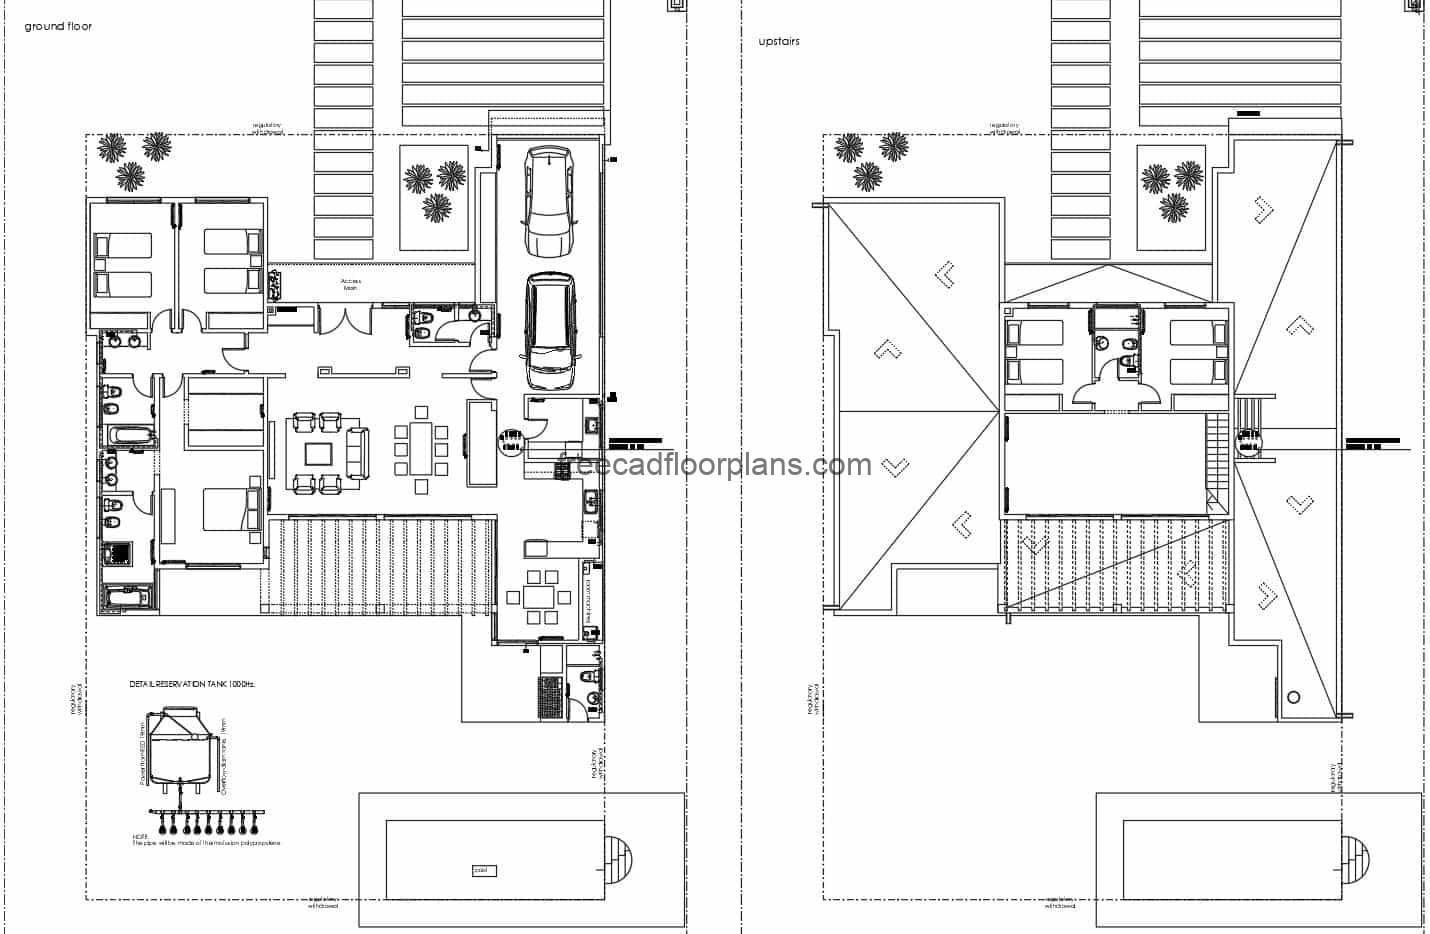 Architectural design file of a two-storey house, complete set of plans for free download in DWG Autocad